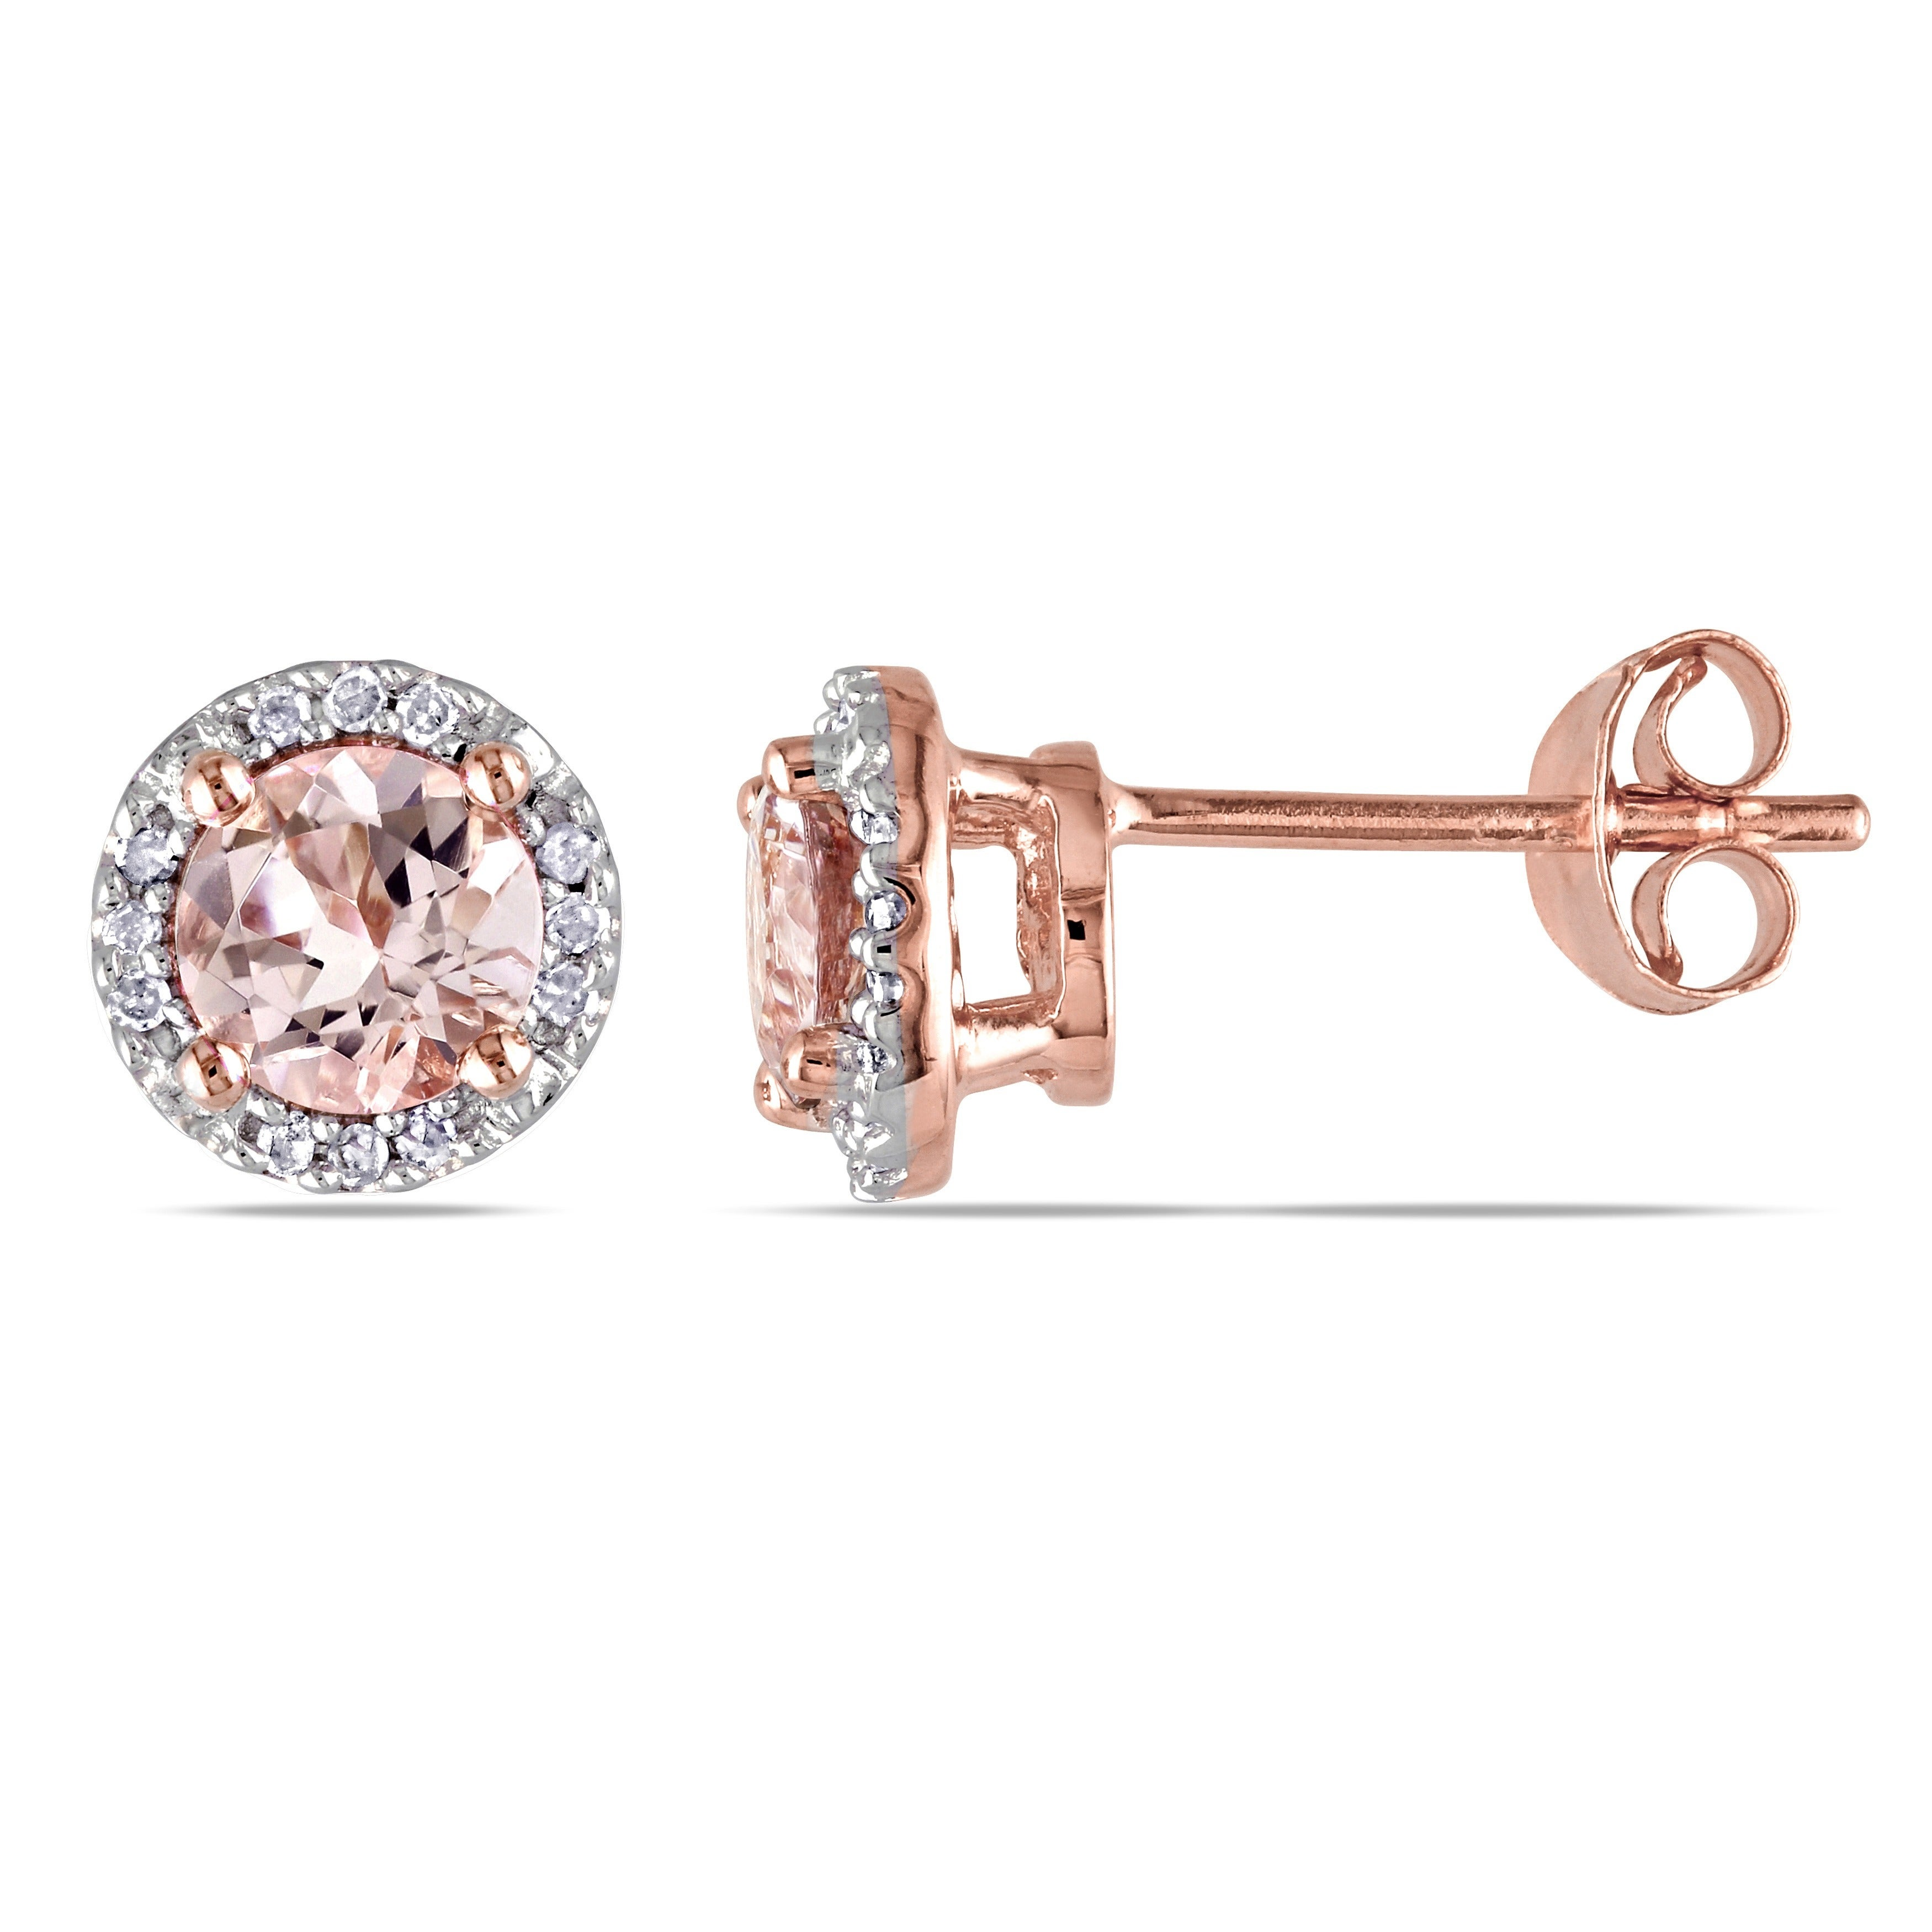 Miadora Rose Goldplated Sterling Silver Morganite And Diamond Accent Halo Stud Earrings Free Shipping Today 14734754